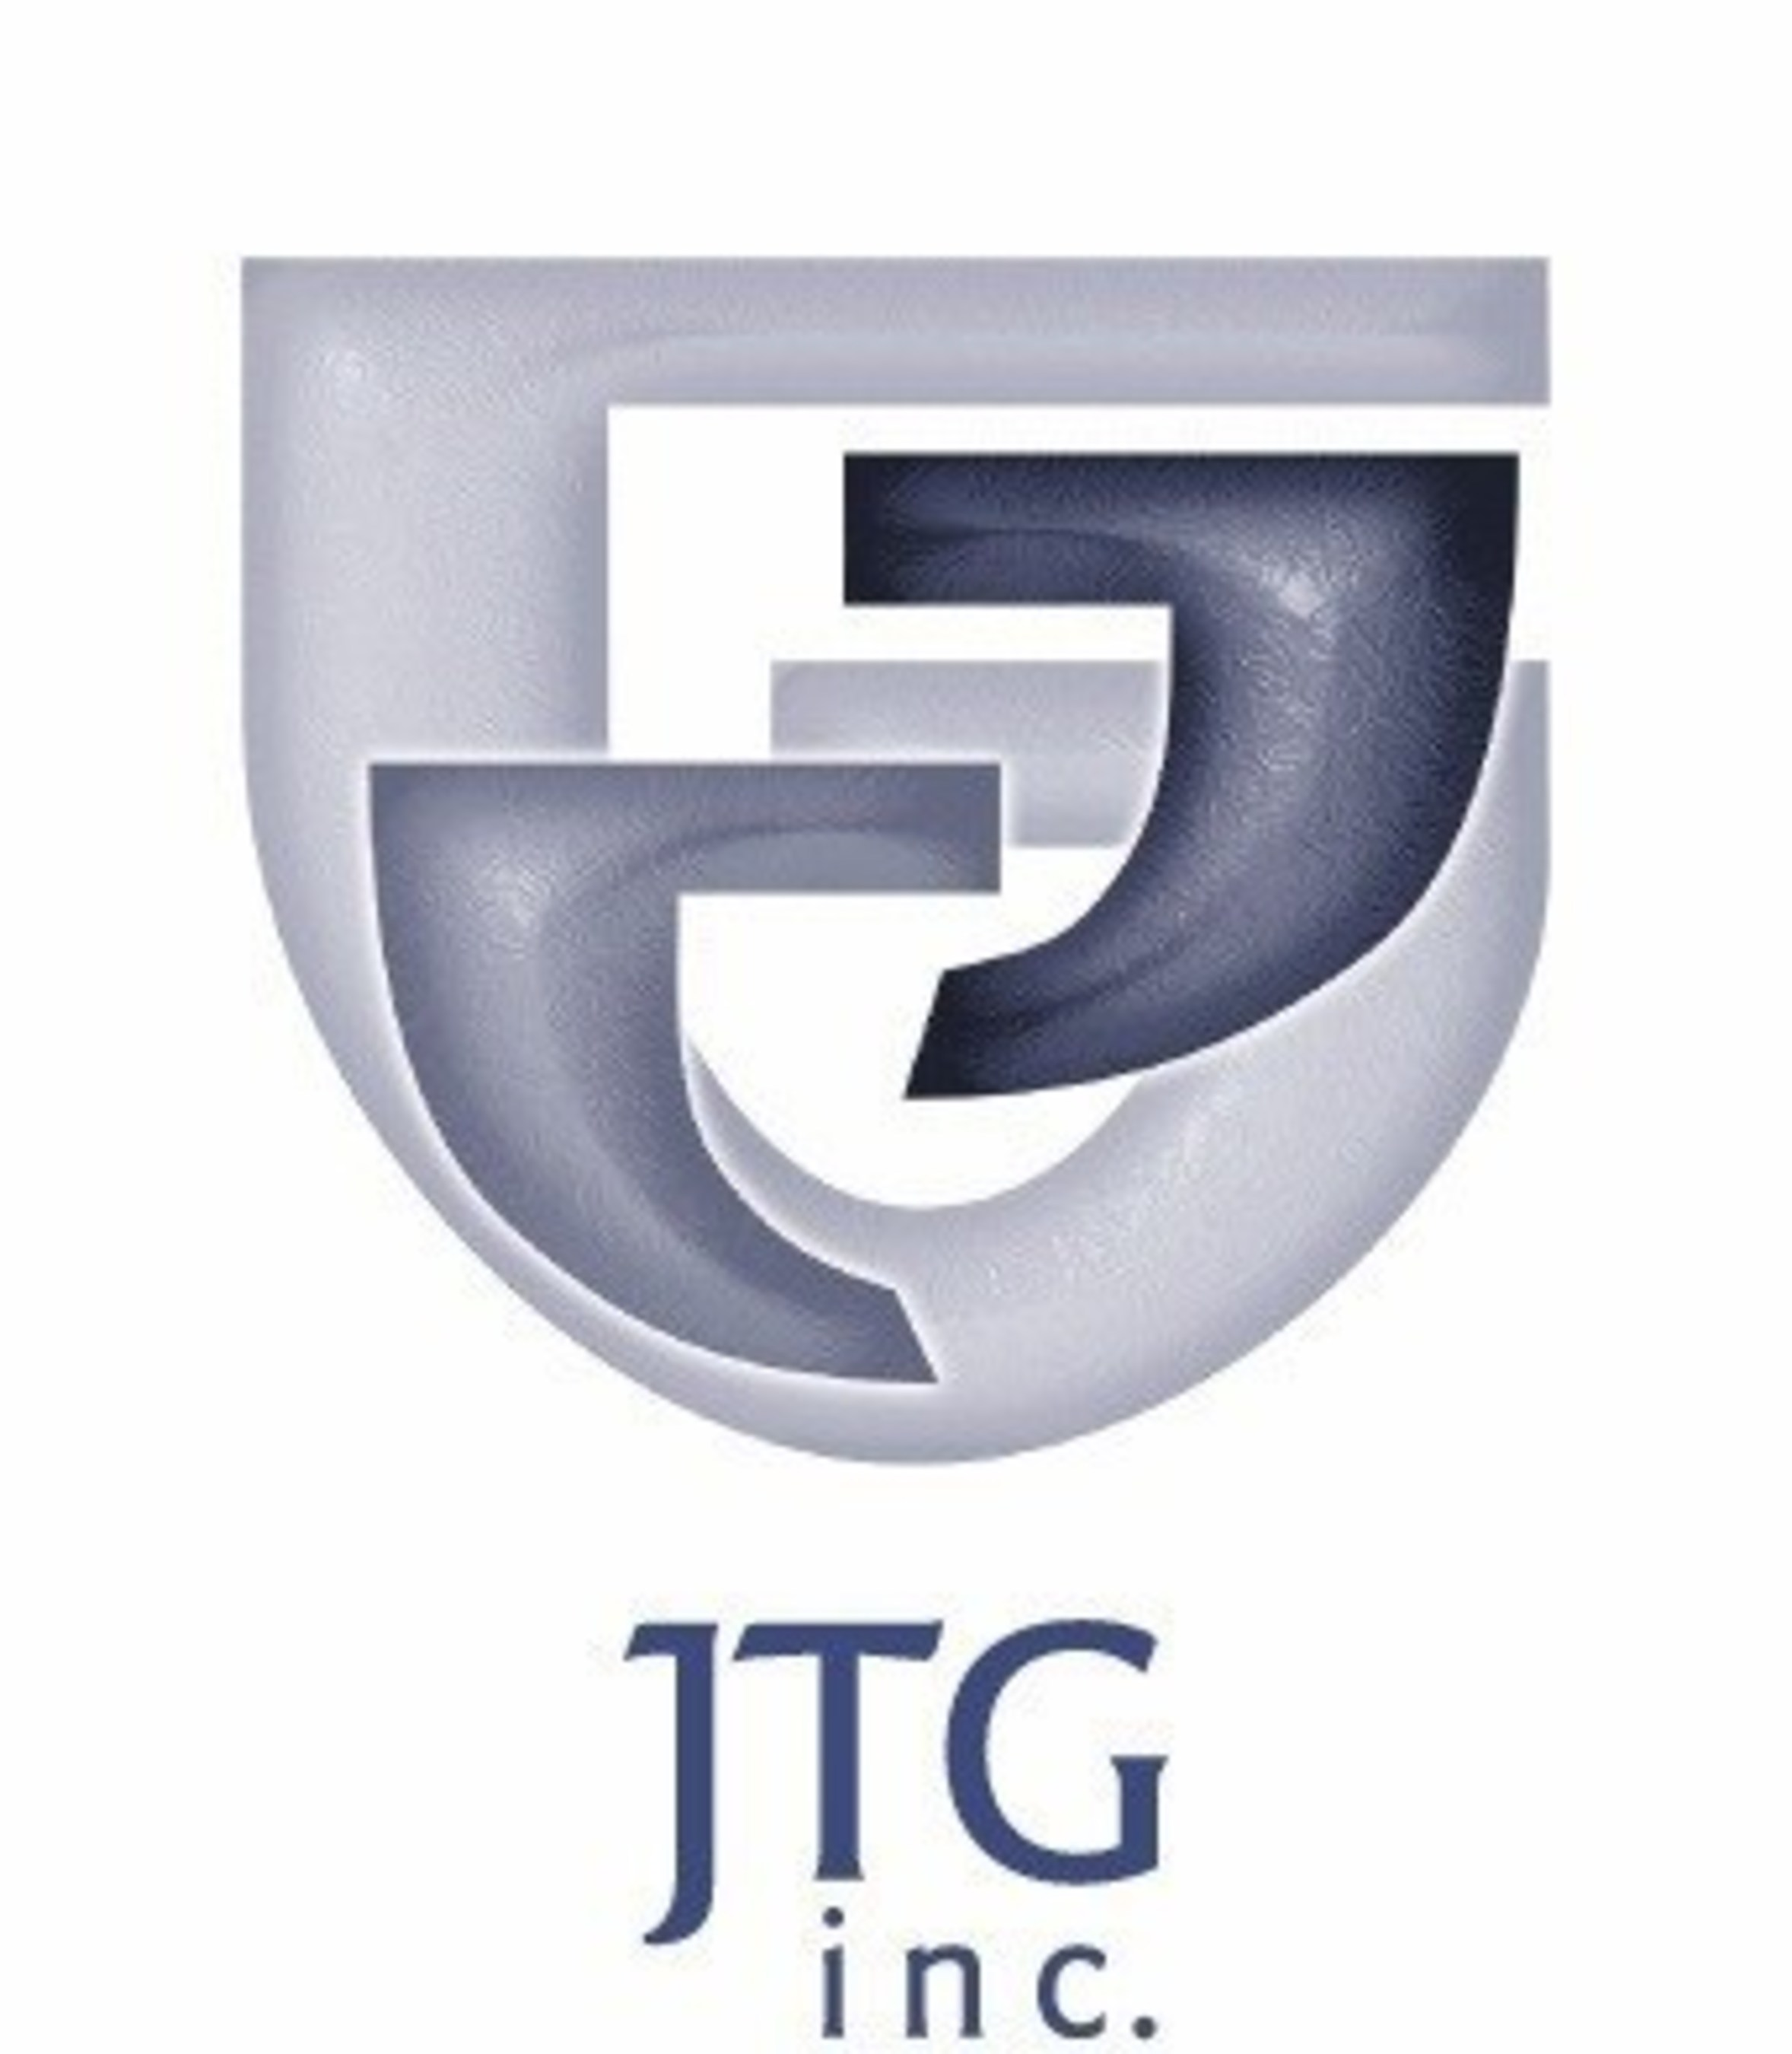 JTG Announces 2014 Year-End Results